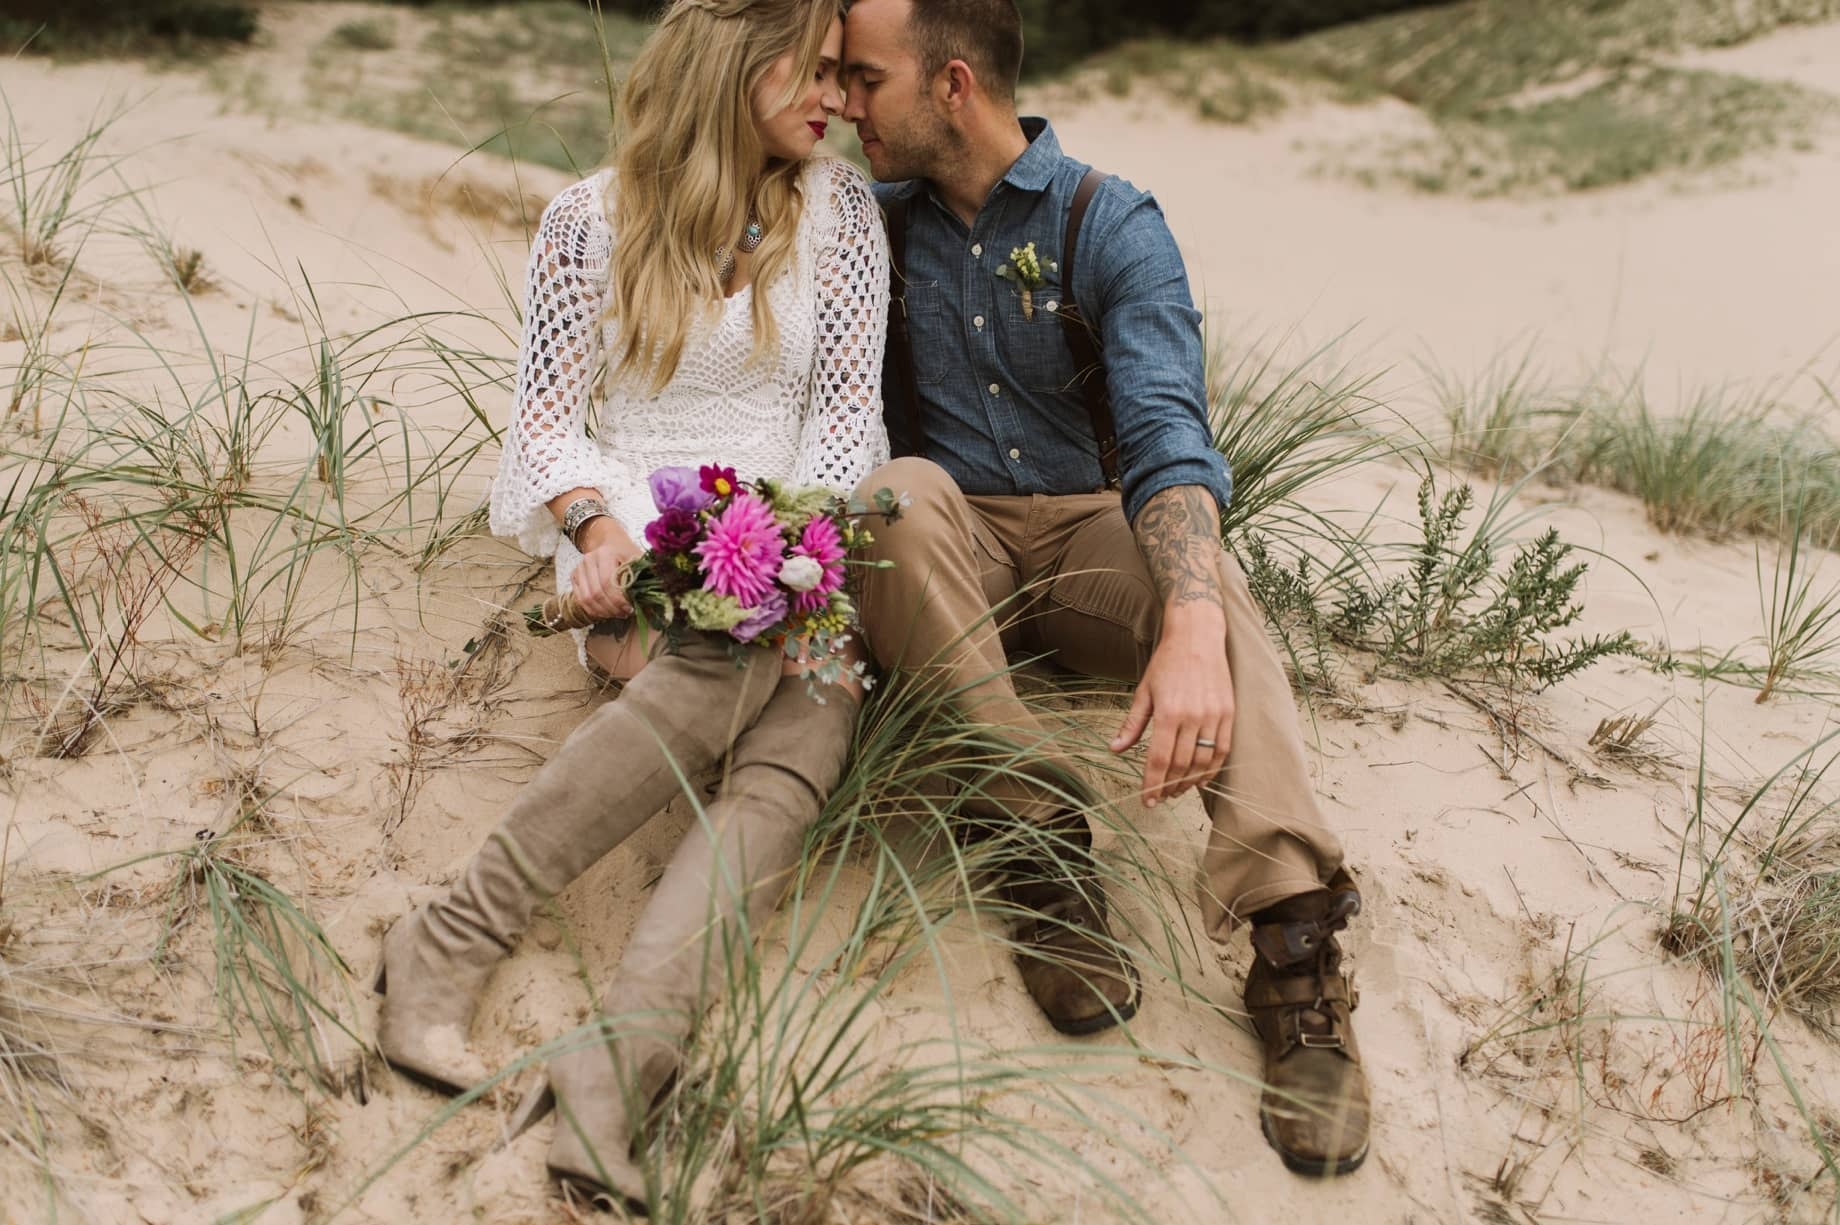 mcihigan sand dunes wedding